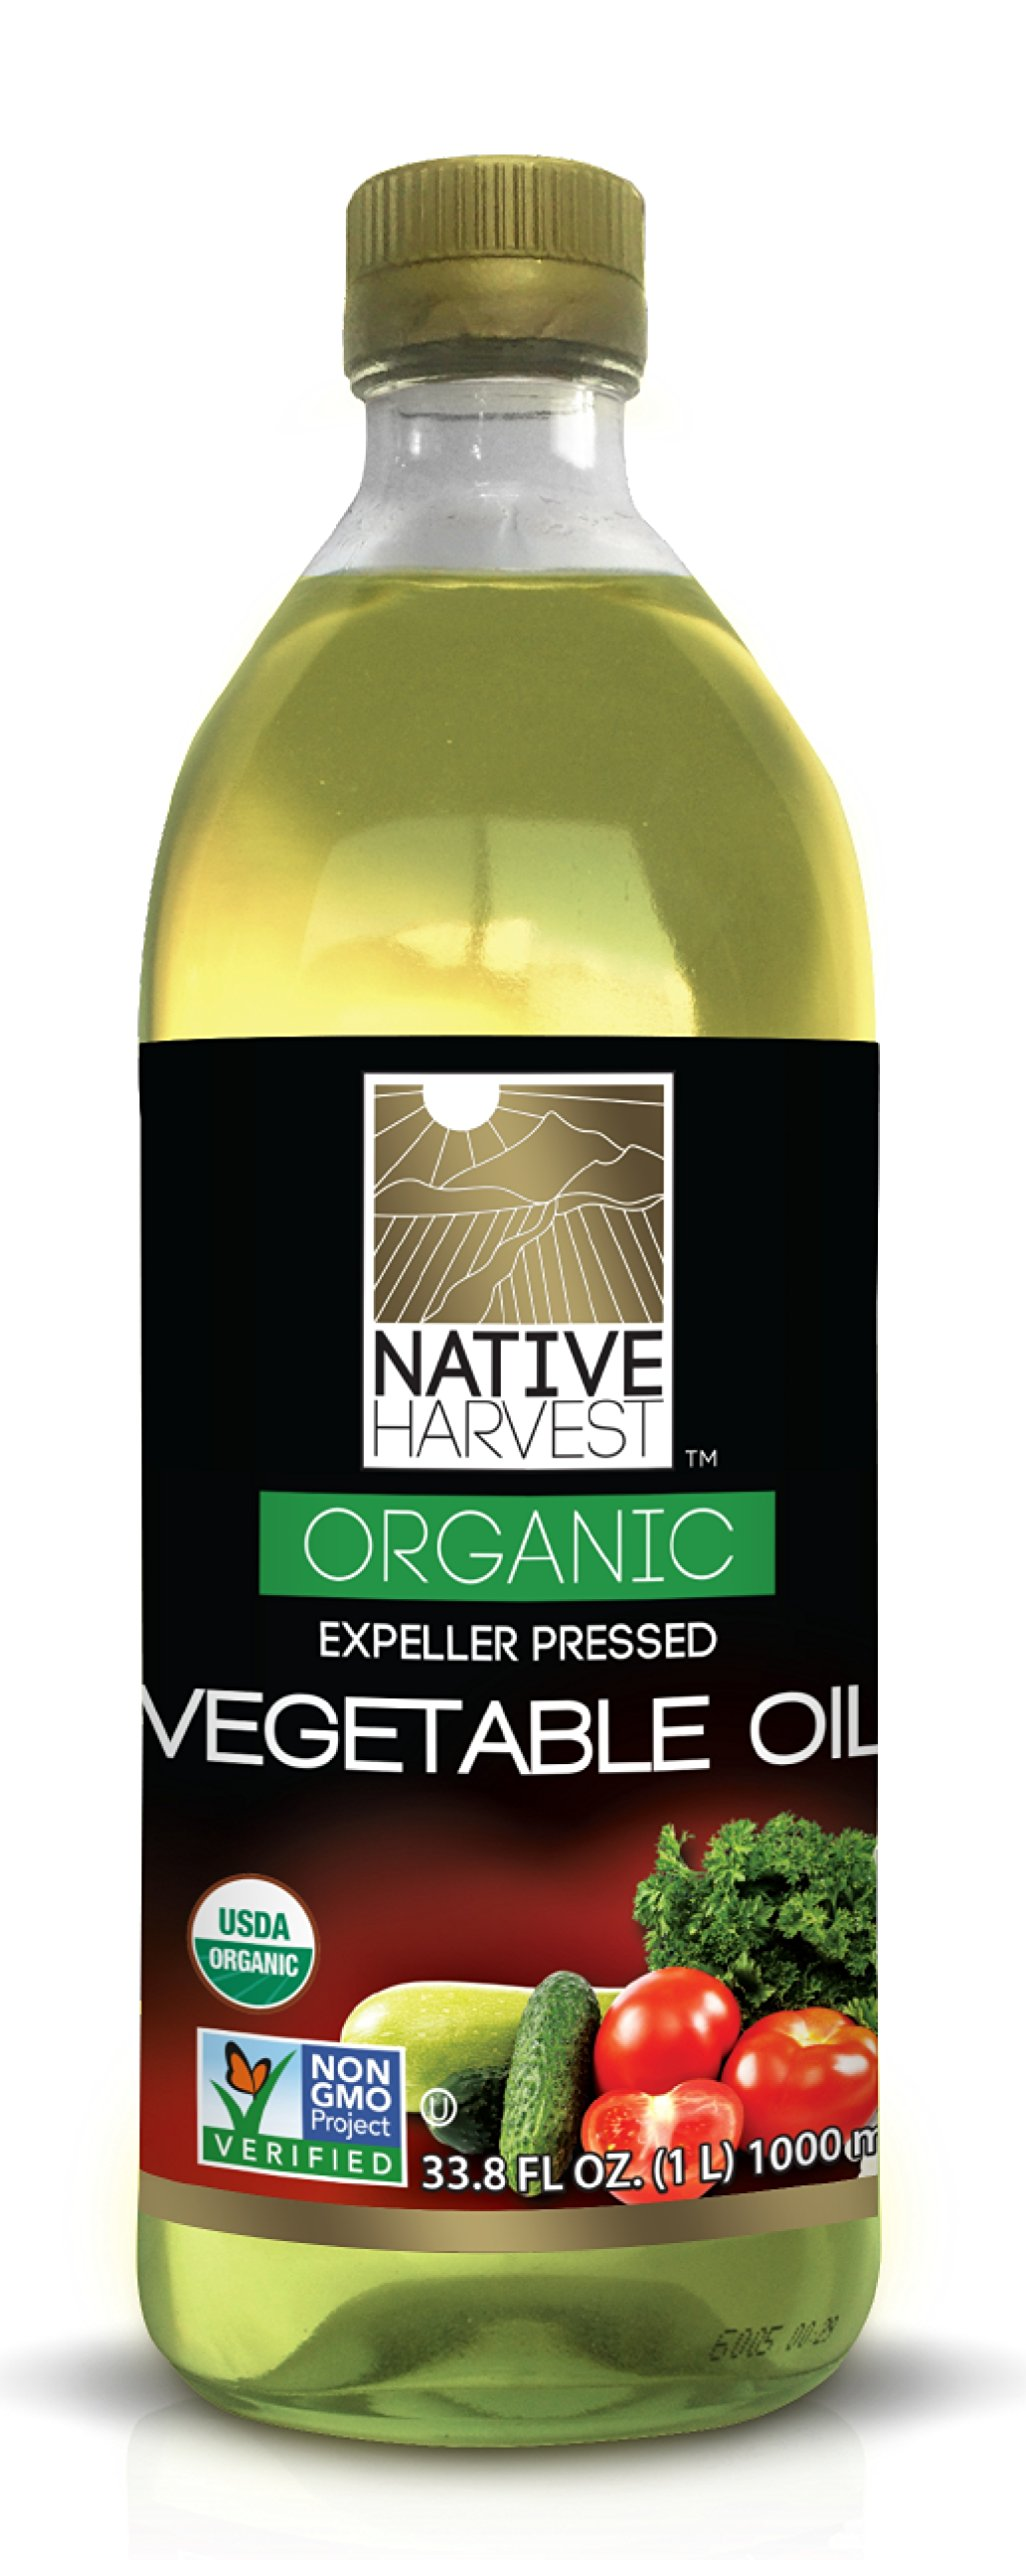 Native Harvest Organic Non-GMO Naturally Expeller Pressed Vegetable Oil, 1 Litre (33.8 FL OZ)